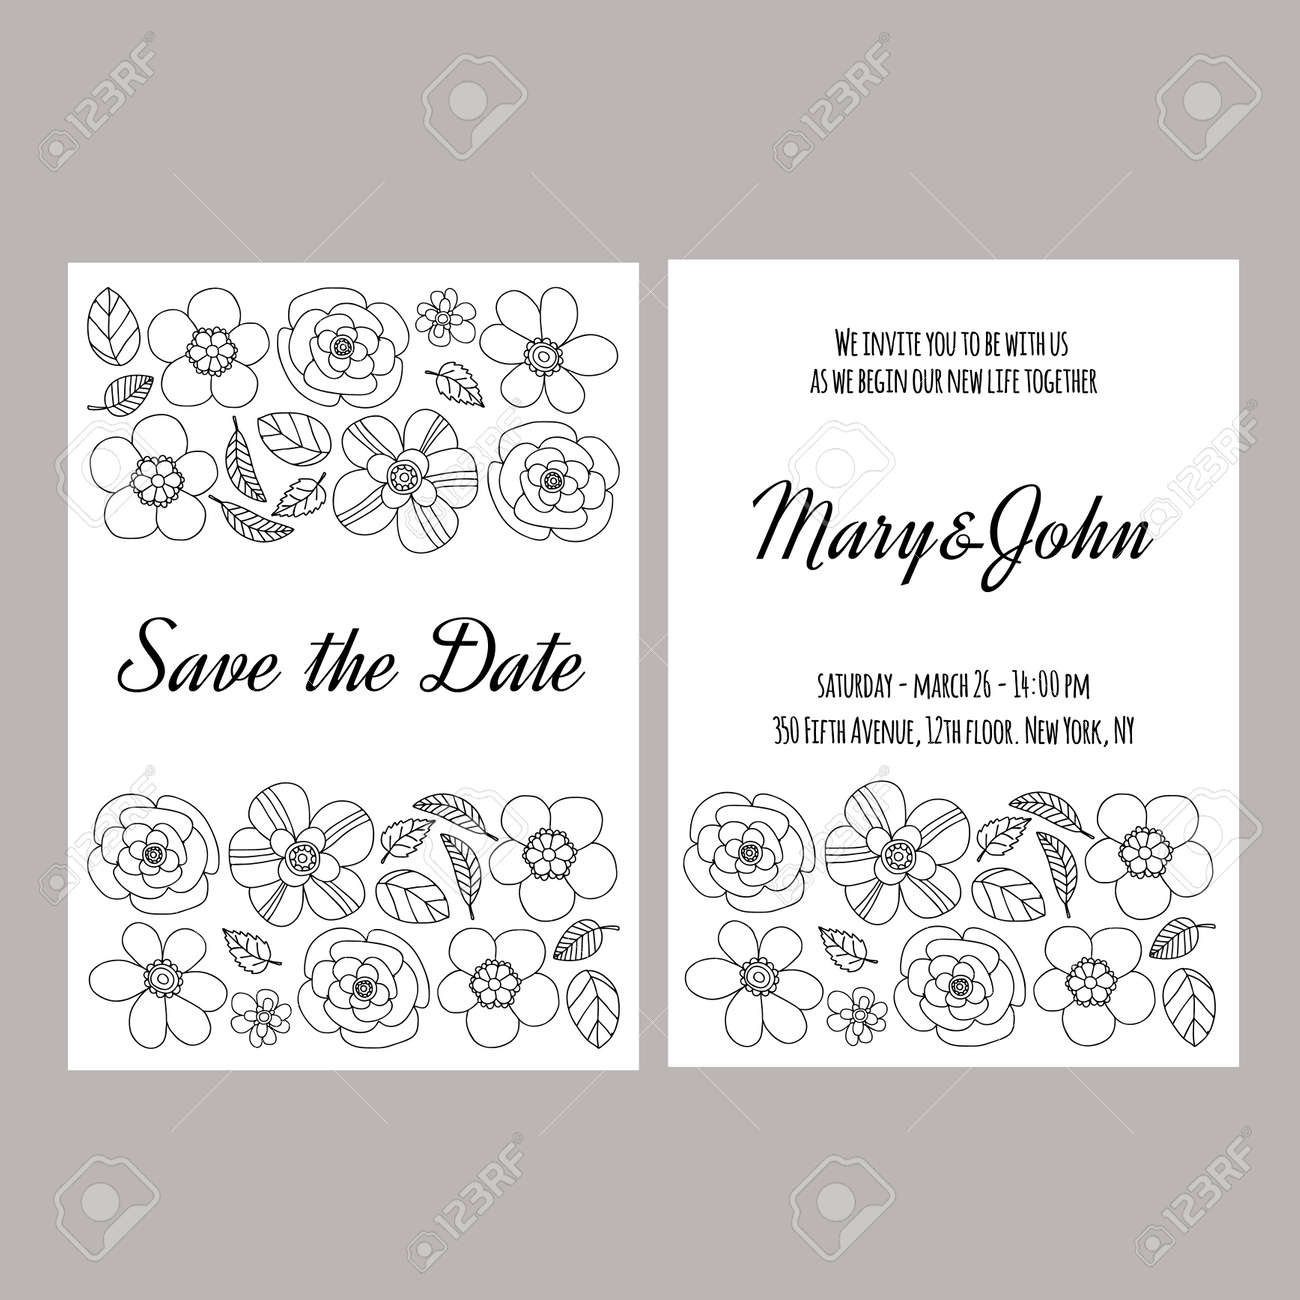 Wedding invitation vector template hand drawn elements royalty free vector wedding invitation vector template hand drawn elements stopboris Image collections